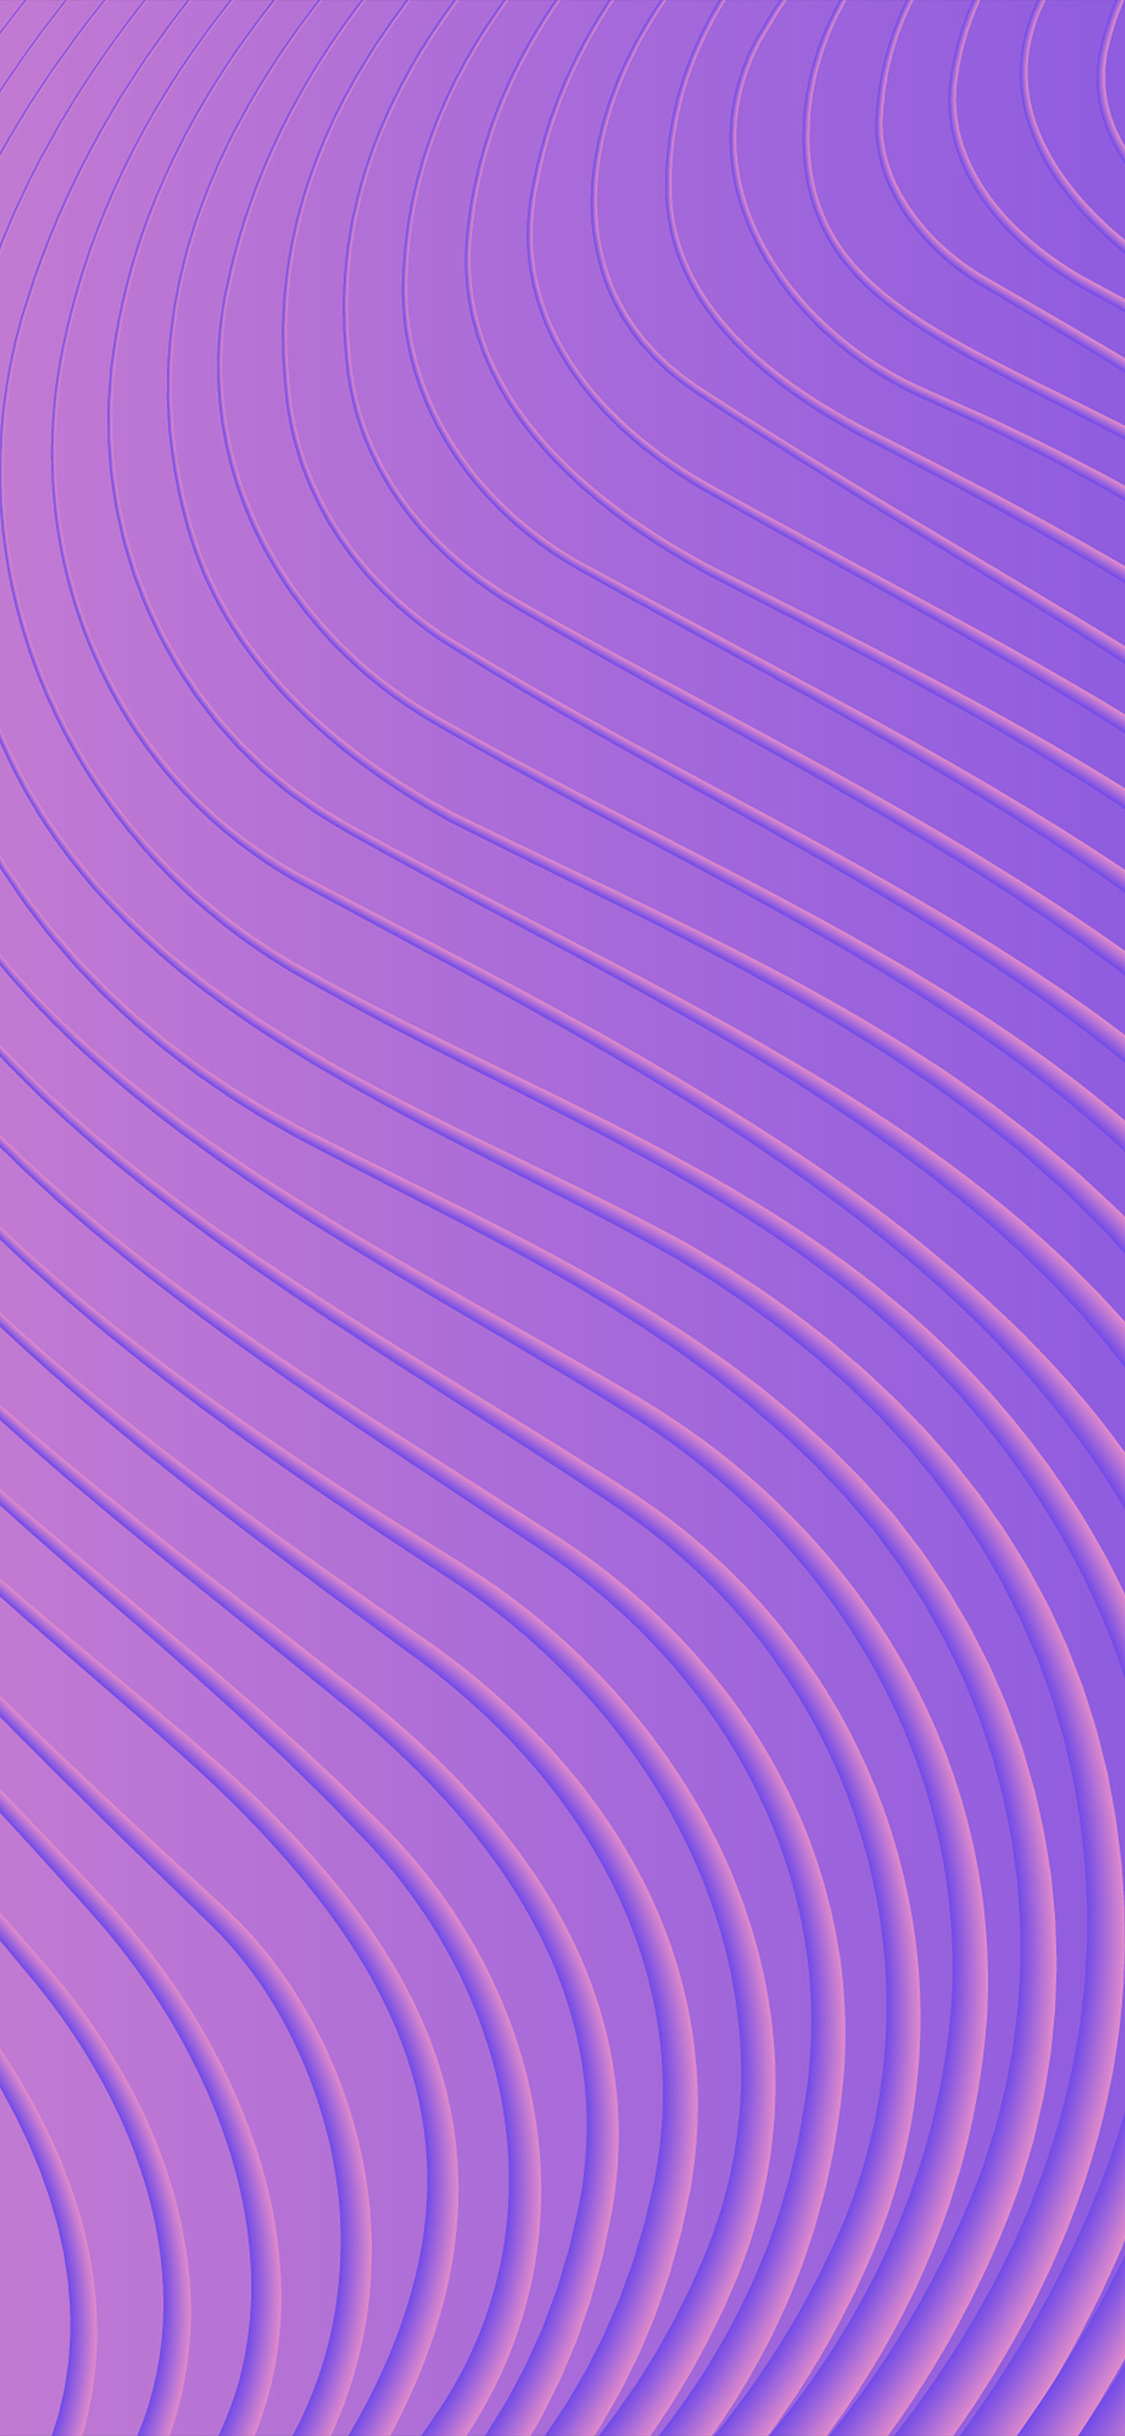 Iphonexpapers Com Iphone X Wallpaper Vp11 Curve Pink Purple Pattern